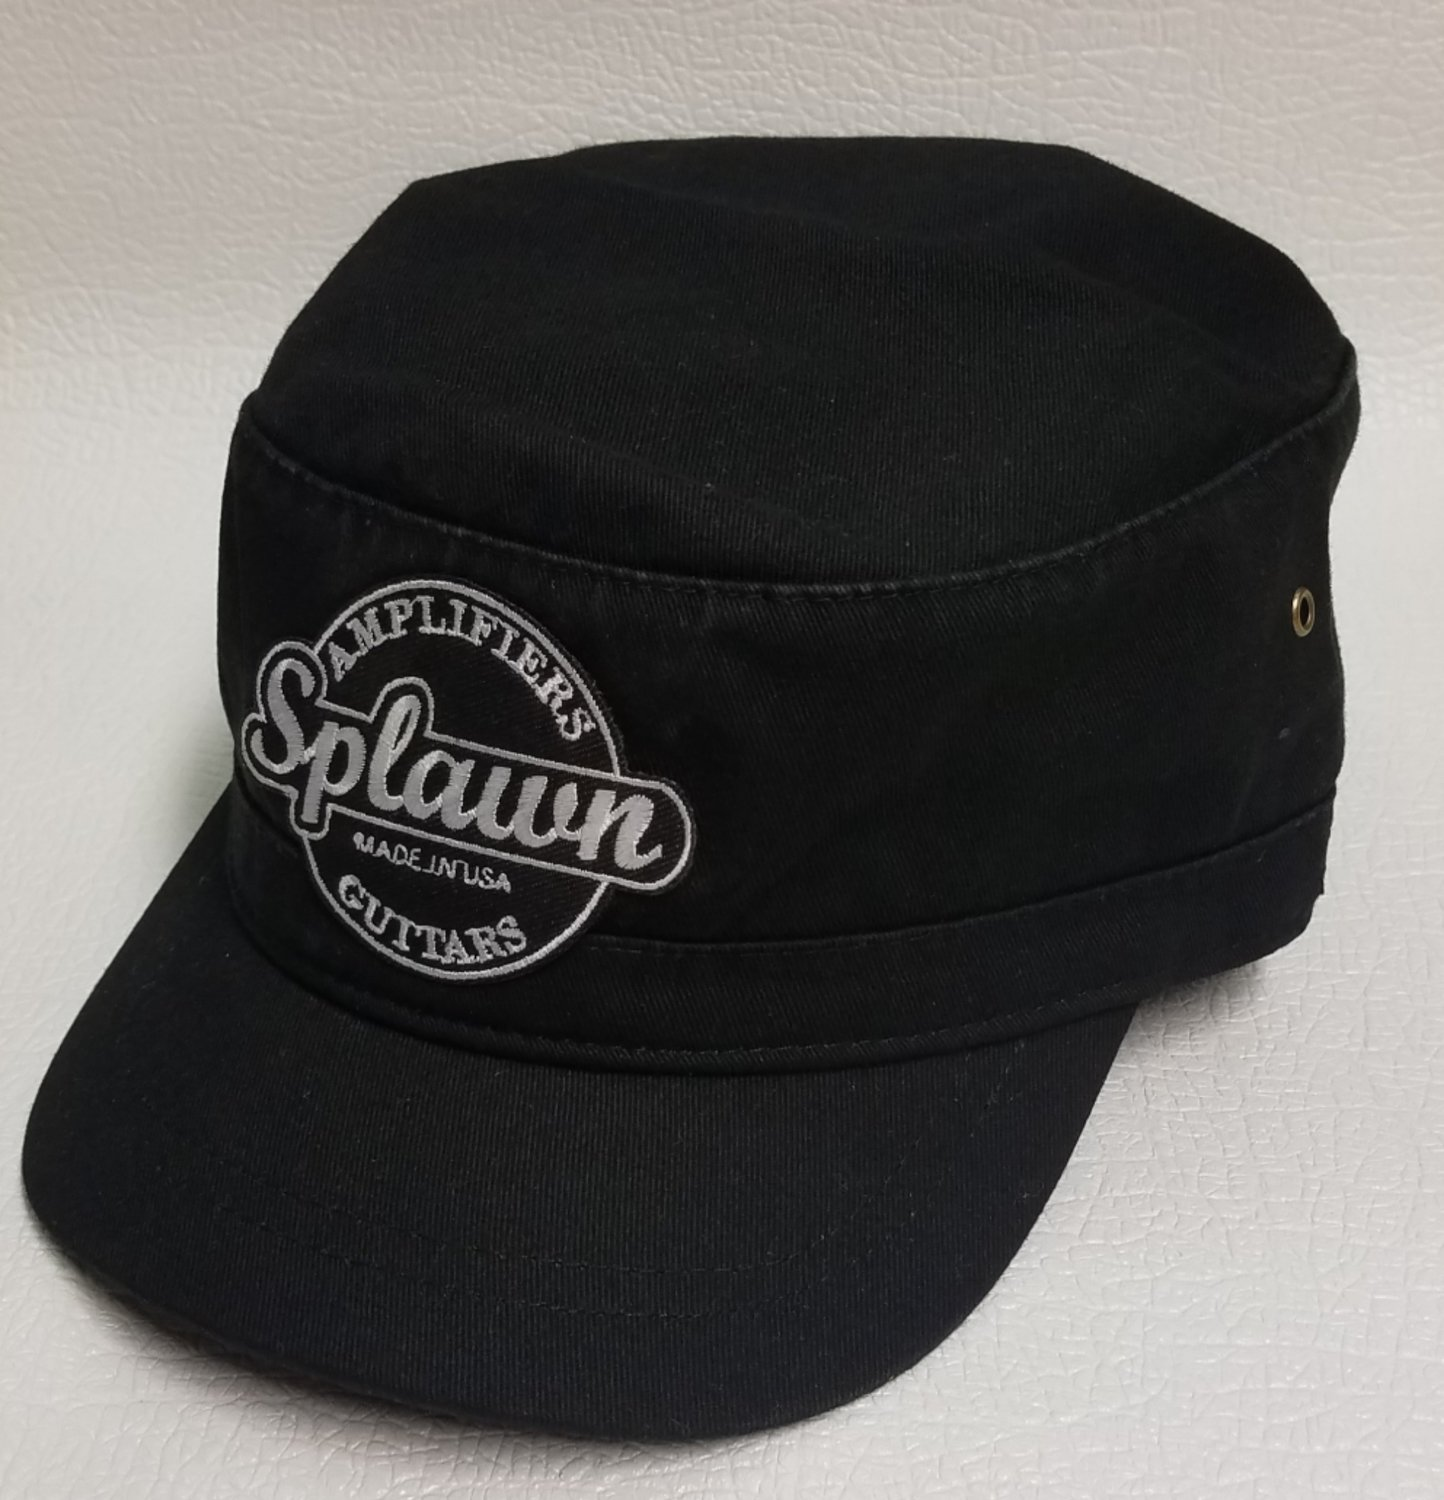 Splawn Amplification Guitars Military Cadet Cap Black